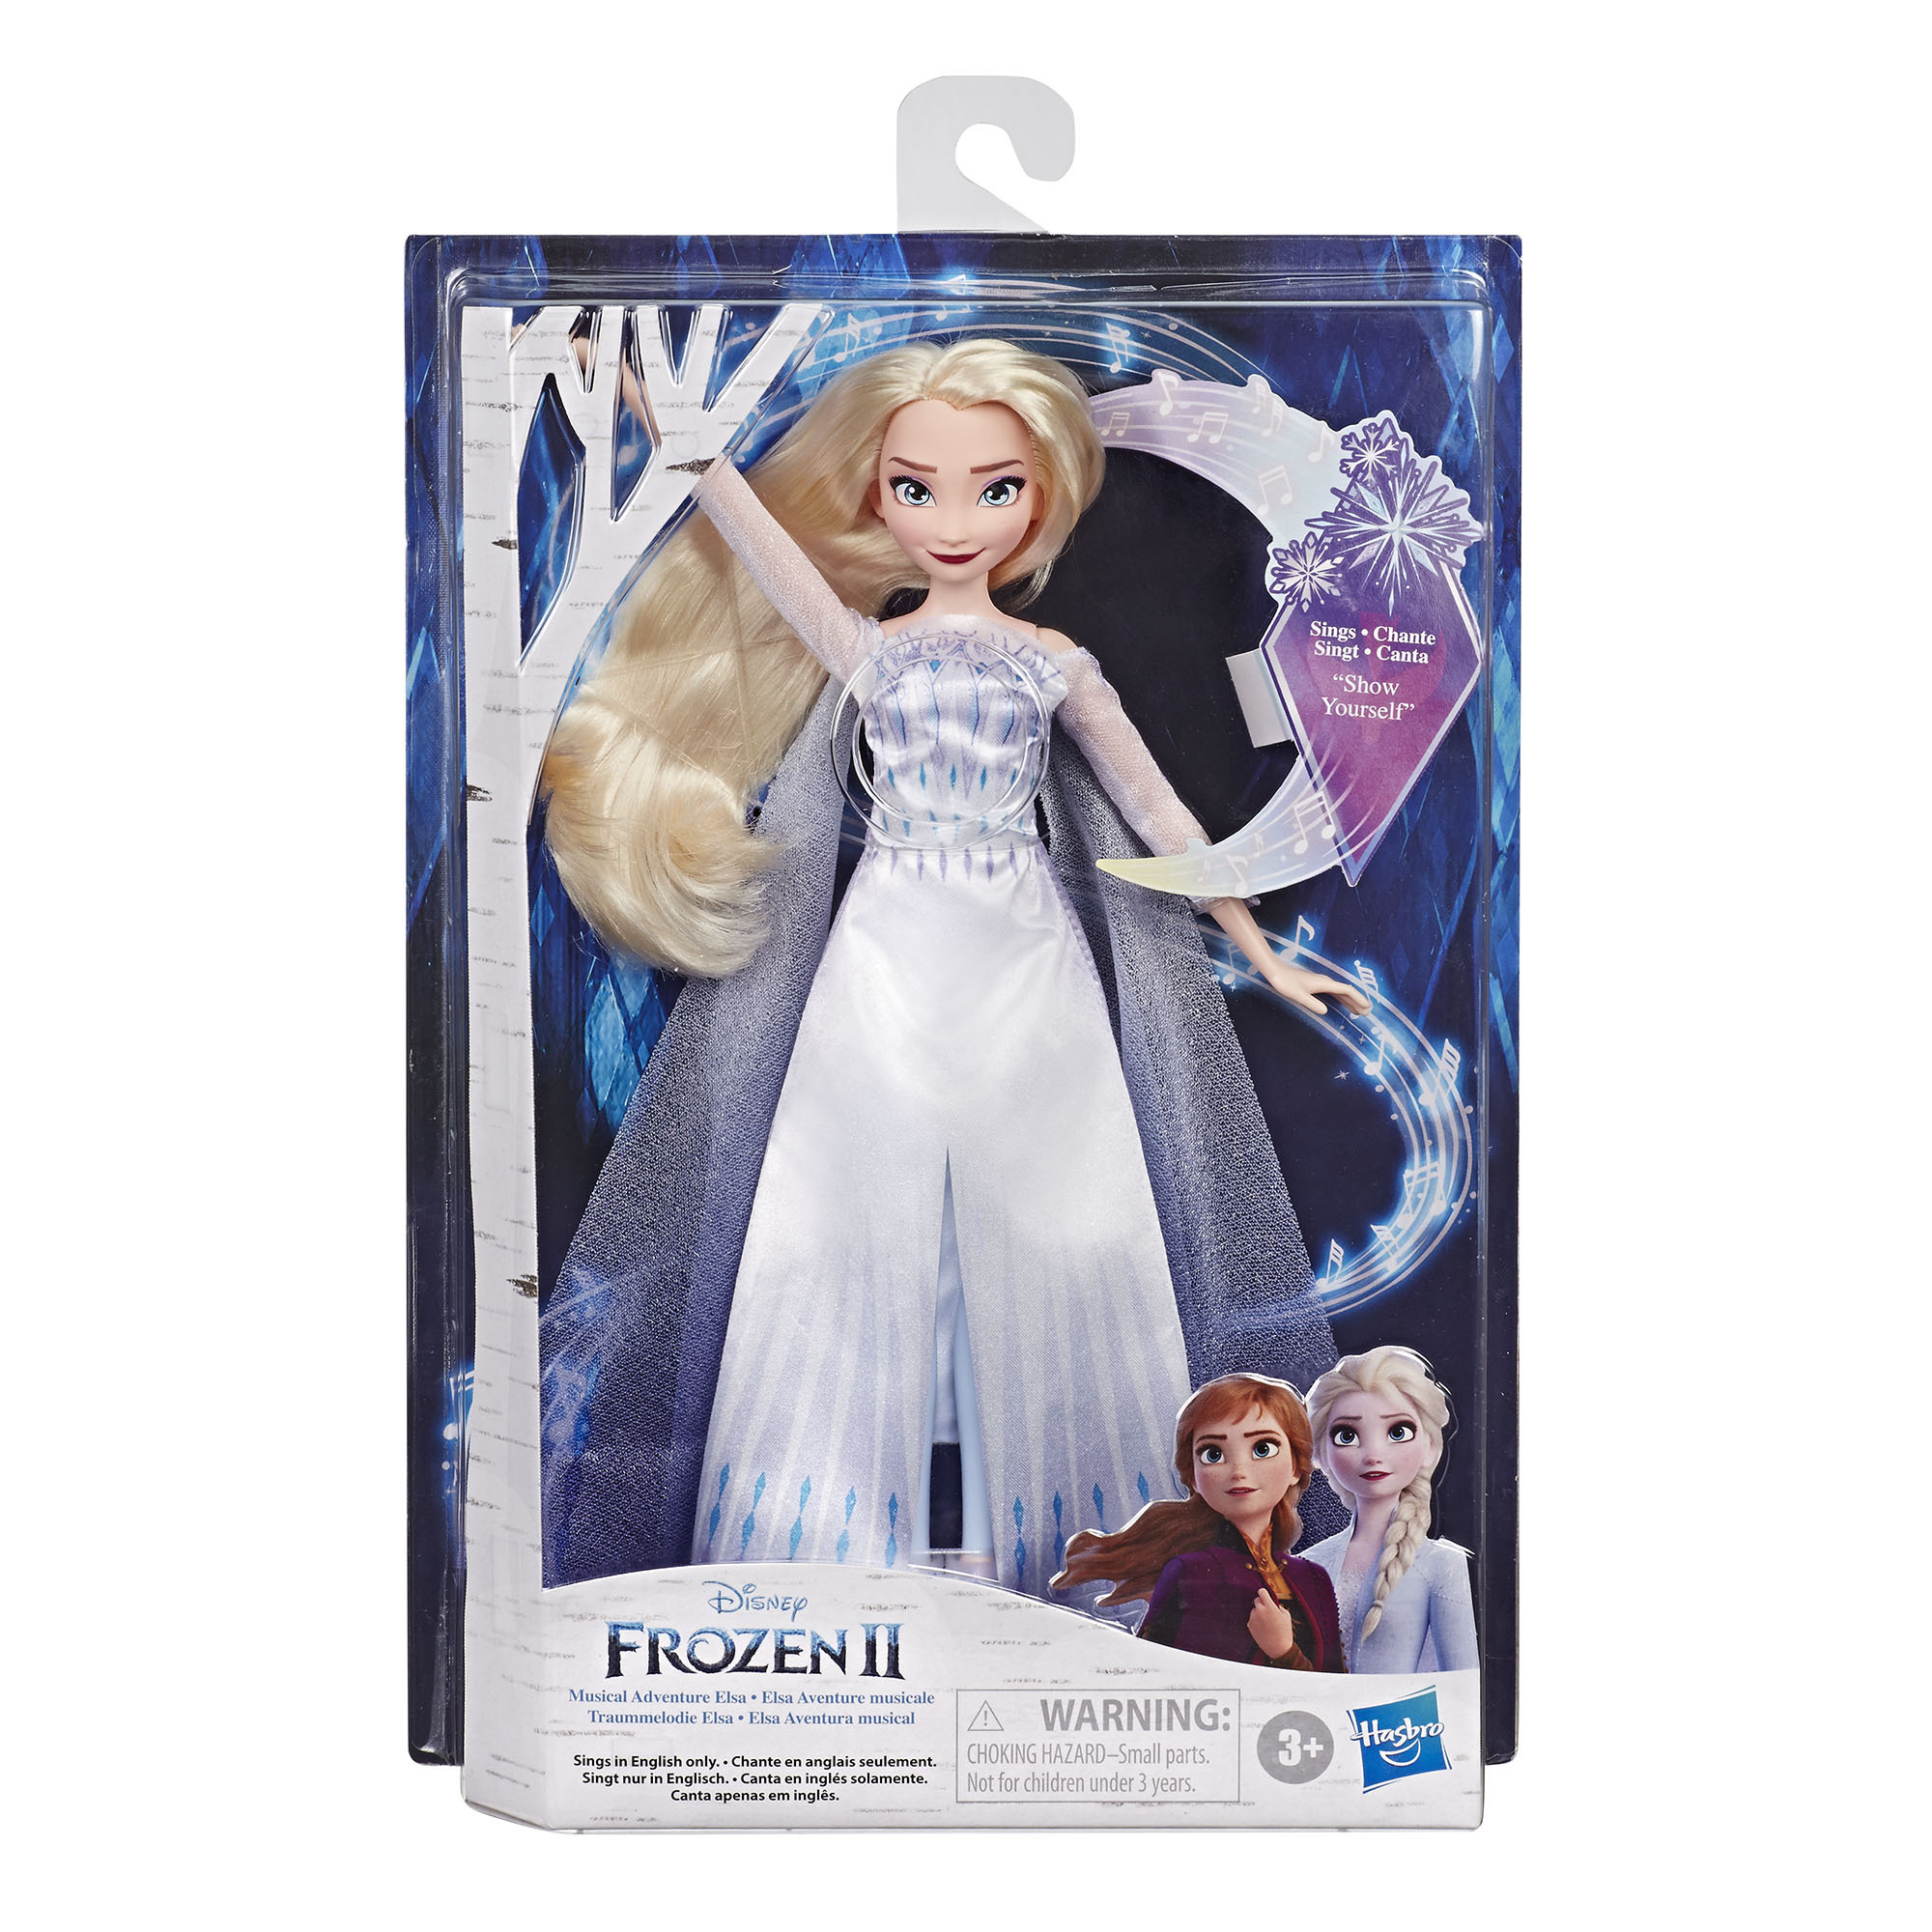 Disney Frozen 2 Singing Elsa Plush Doll